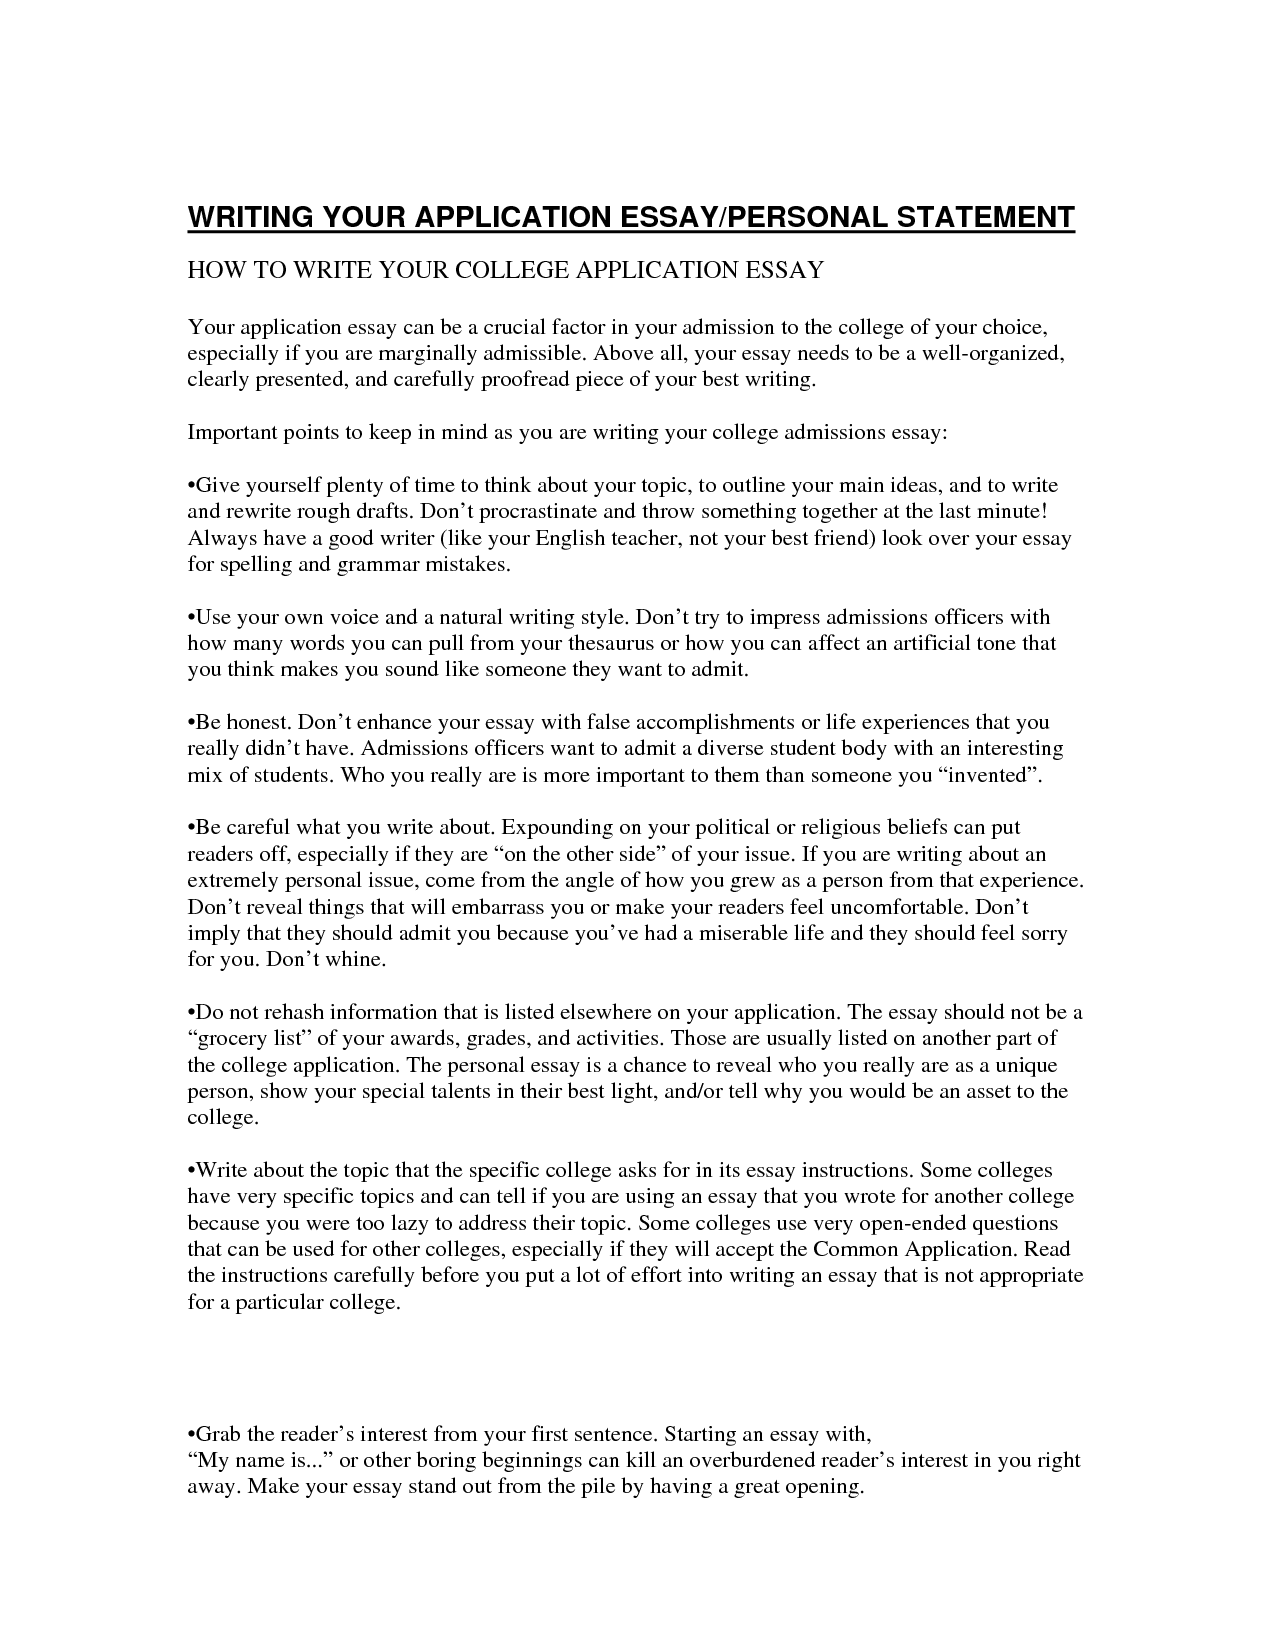 022 Essay Example On Breathtaking Diversity For College Admission Regional In India Indian Culture Full